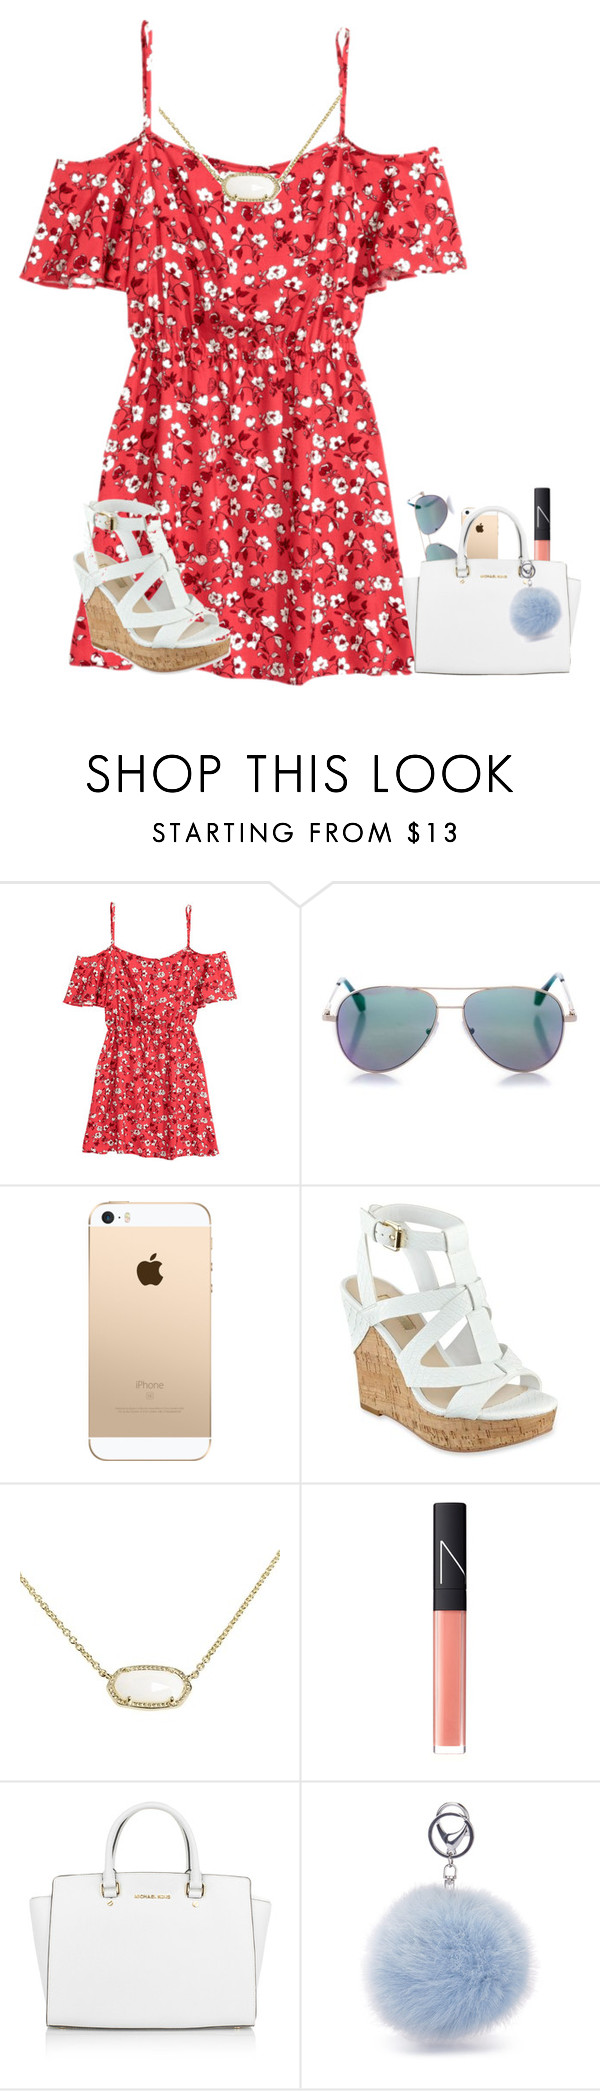 """""""should I do a contest?"""" by texasgirlfashion ❤ liked on Polyvore featuring Cutler and Gross, GUESS, Kendra Scott, NARS Cosmetics and Michael Kors"""